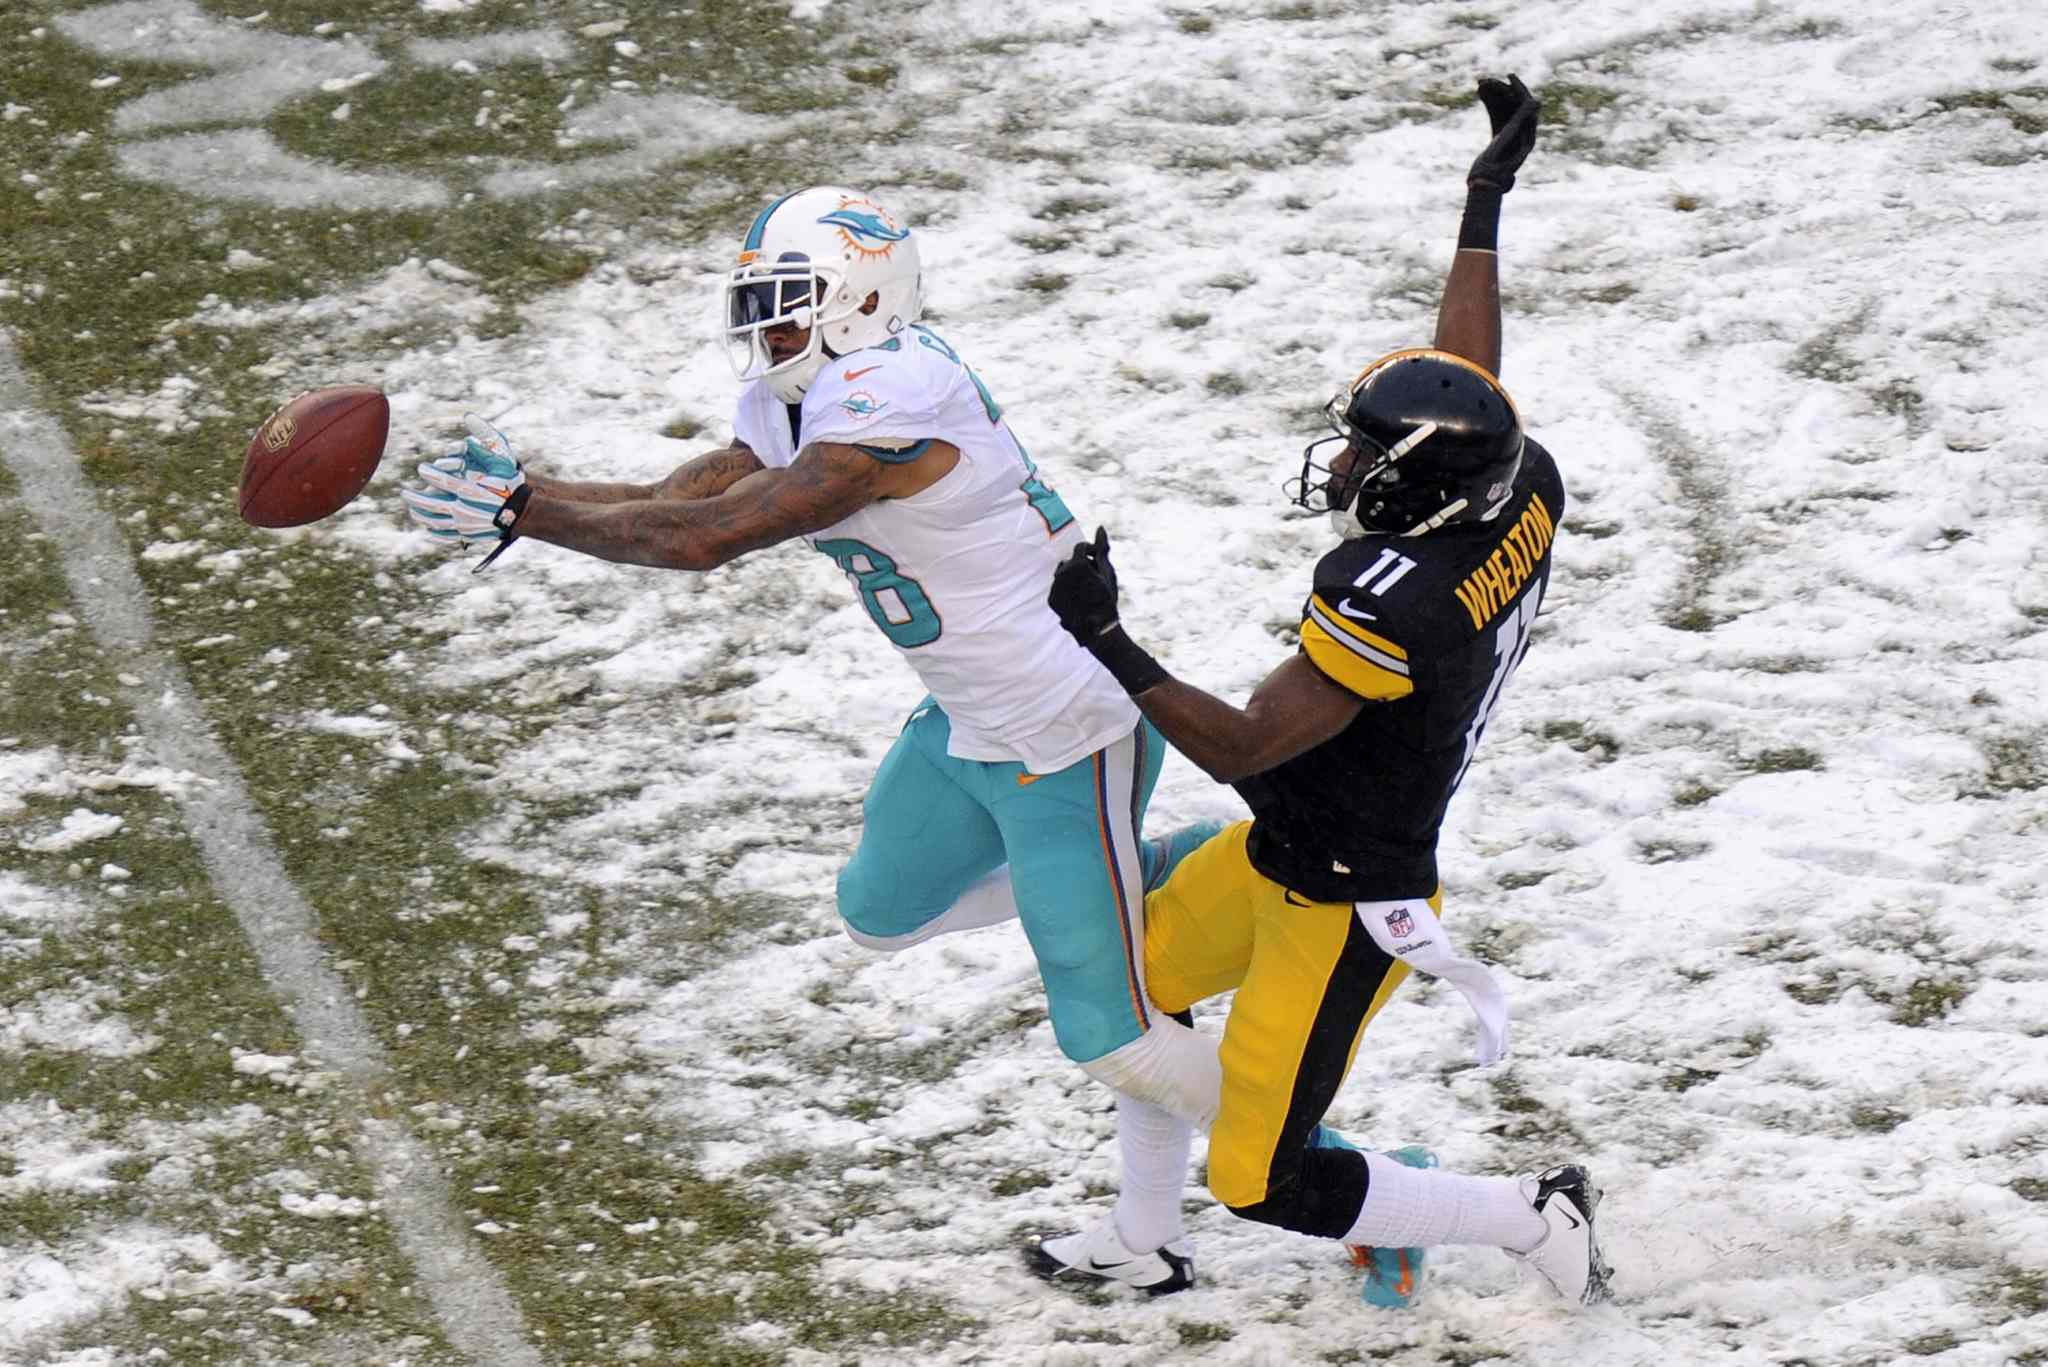 Miami Dolphins cornerback Nolan Carroll (left) can't come up with the interception of a pass intended for Pittsburgh Steelers wide receiver Markus Wheaton during the second half of an NFL football game in Pittsburgh on Sunday.